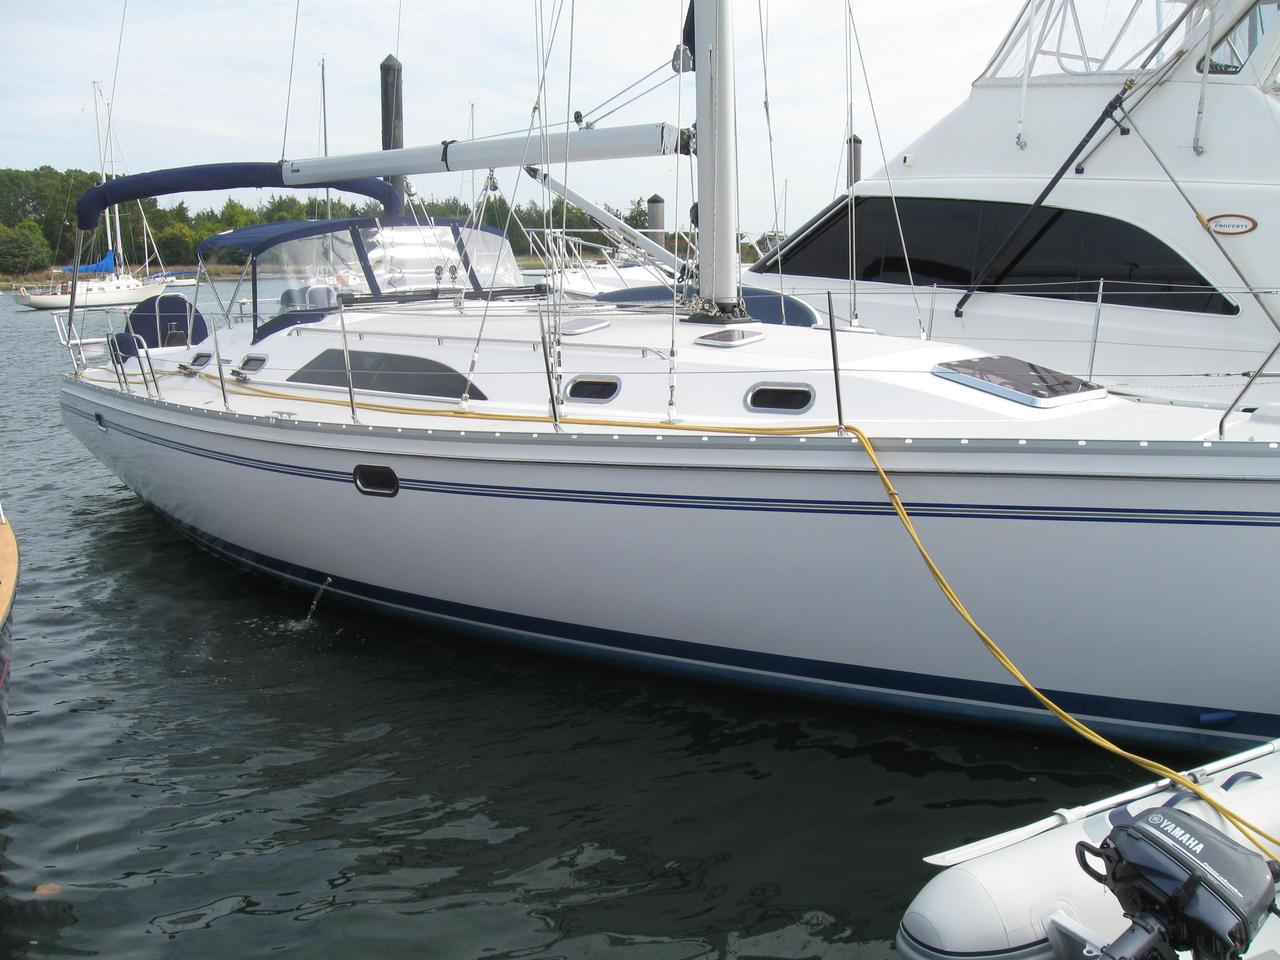 2011 Used Catalina 445 Cruiser Sailboat For Sale - $268,500